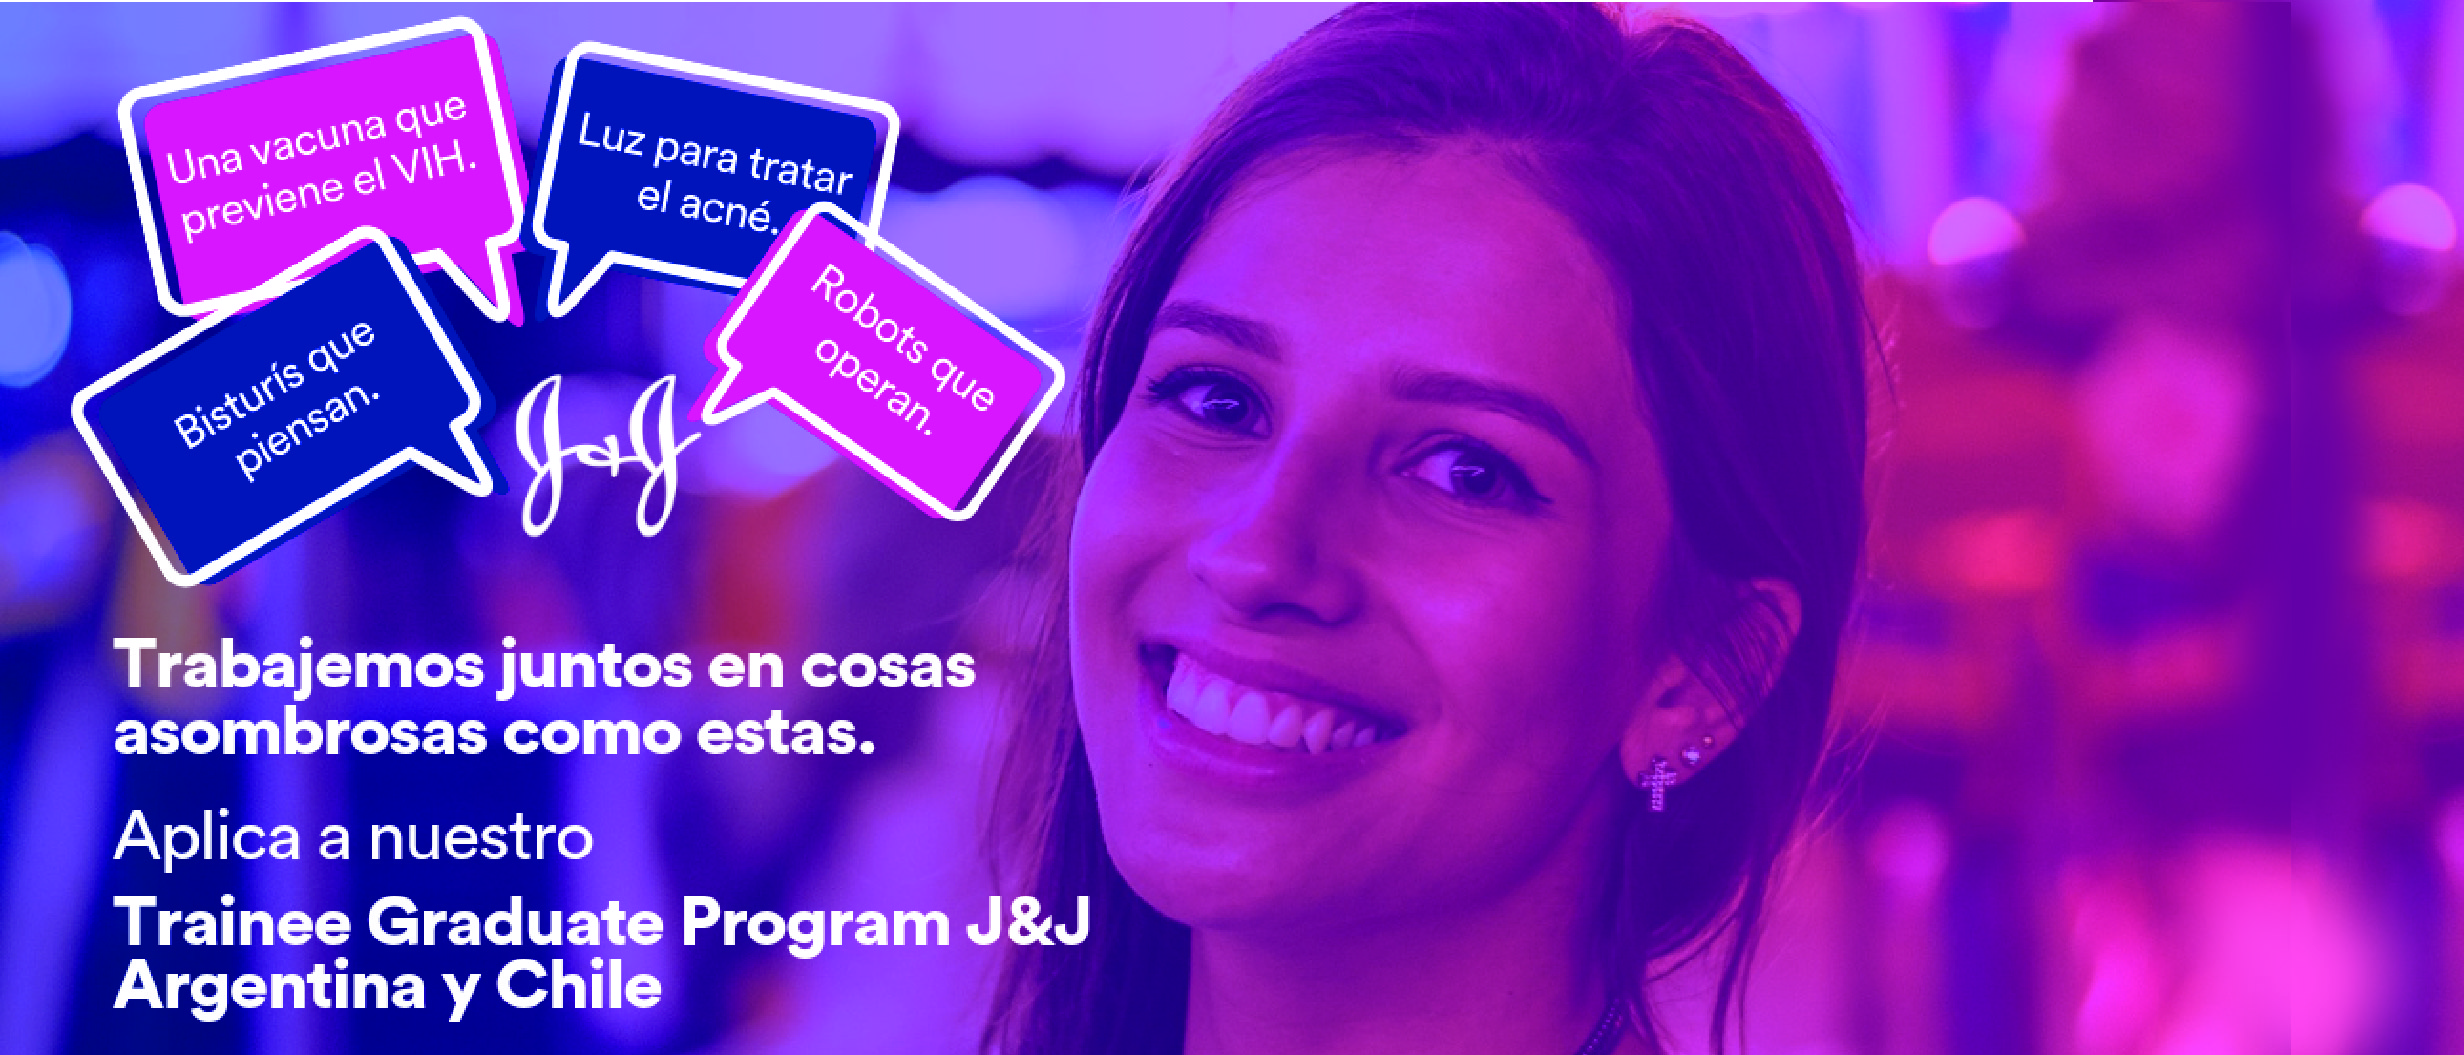 Trainee Graduate Program Argentina y Chile